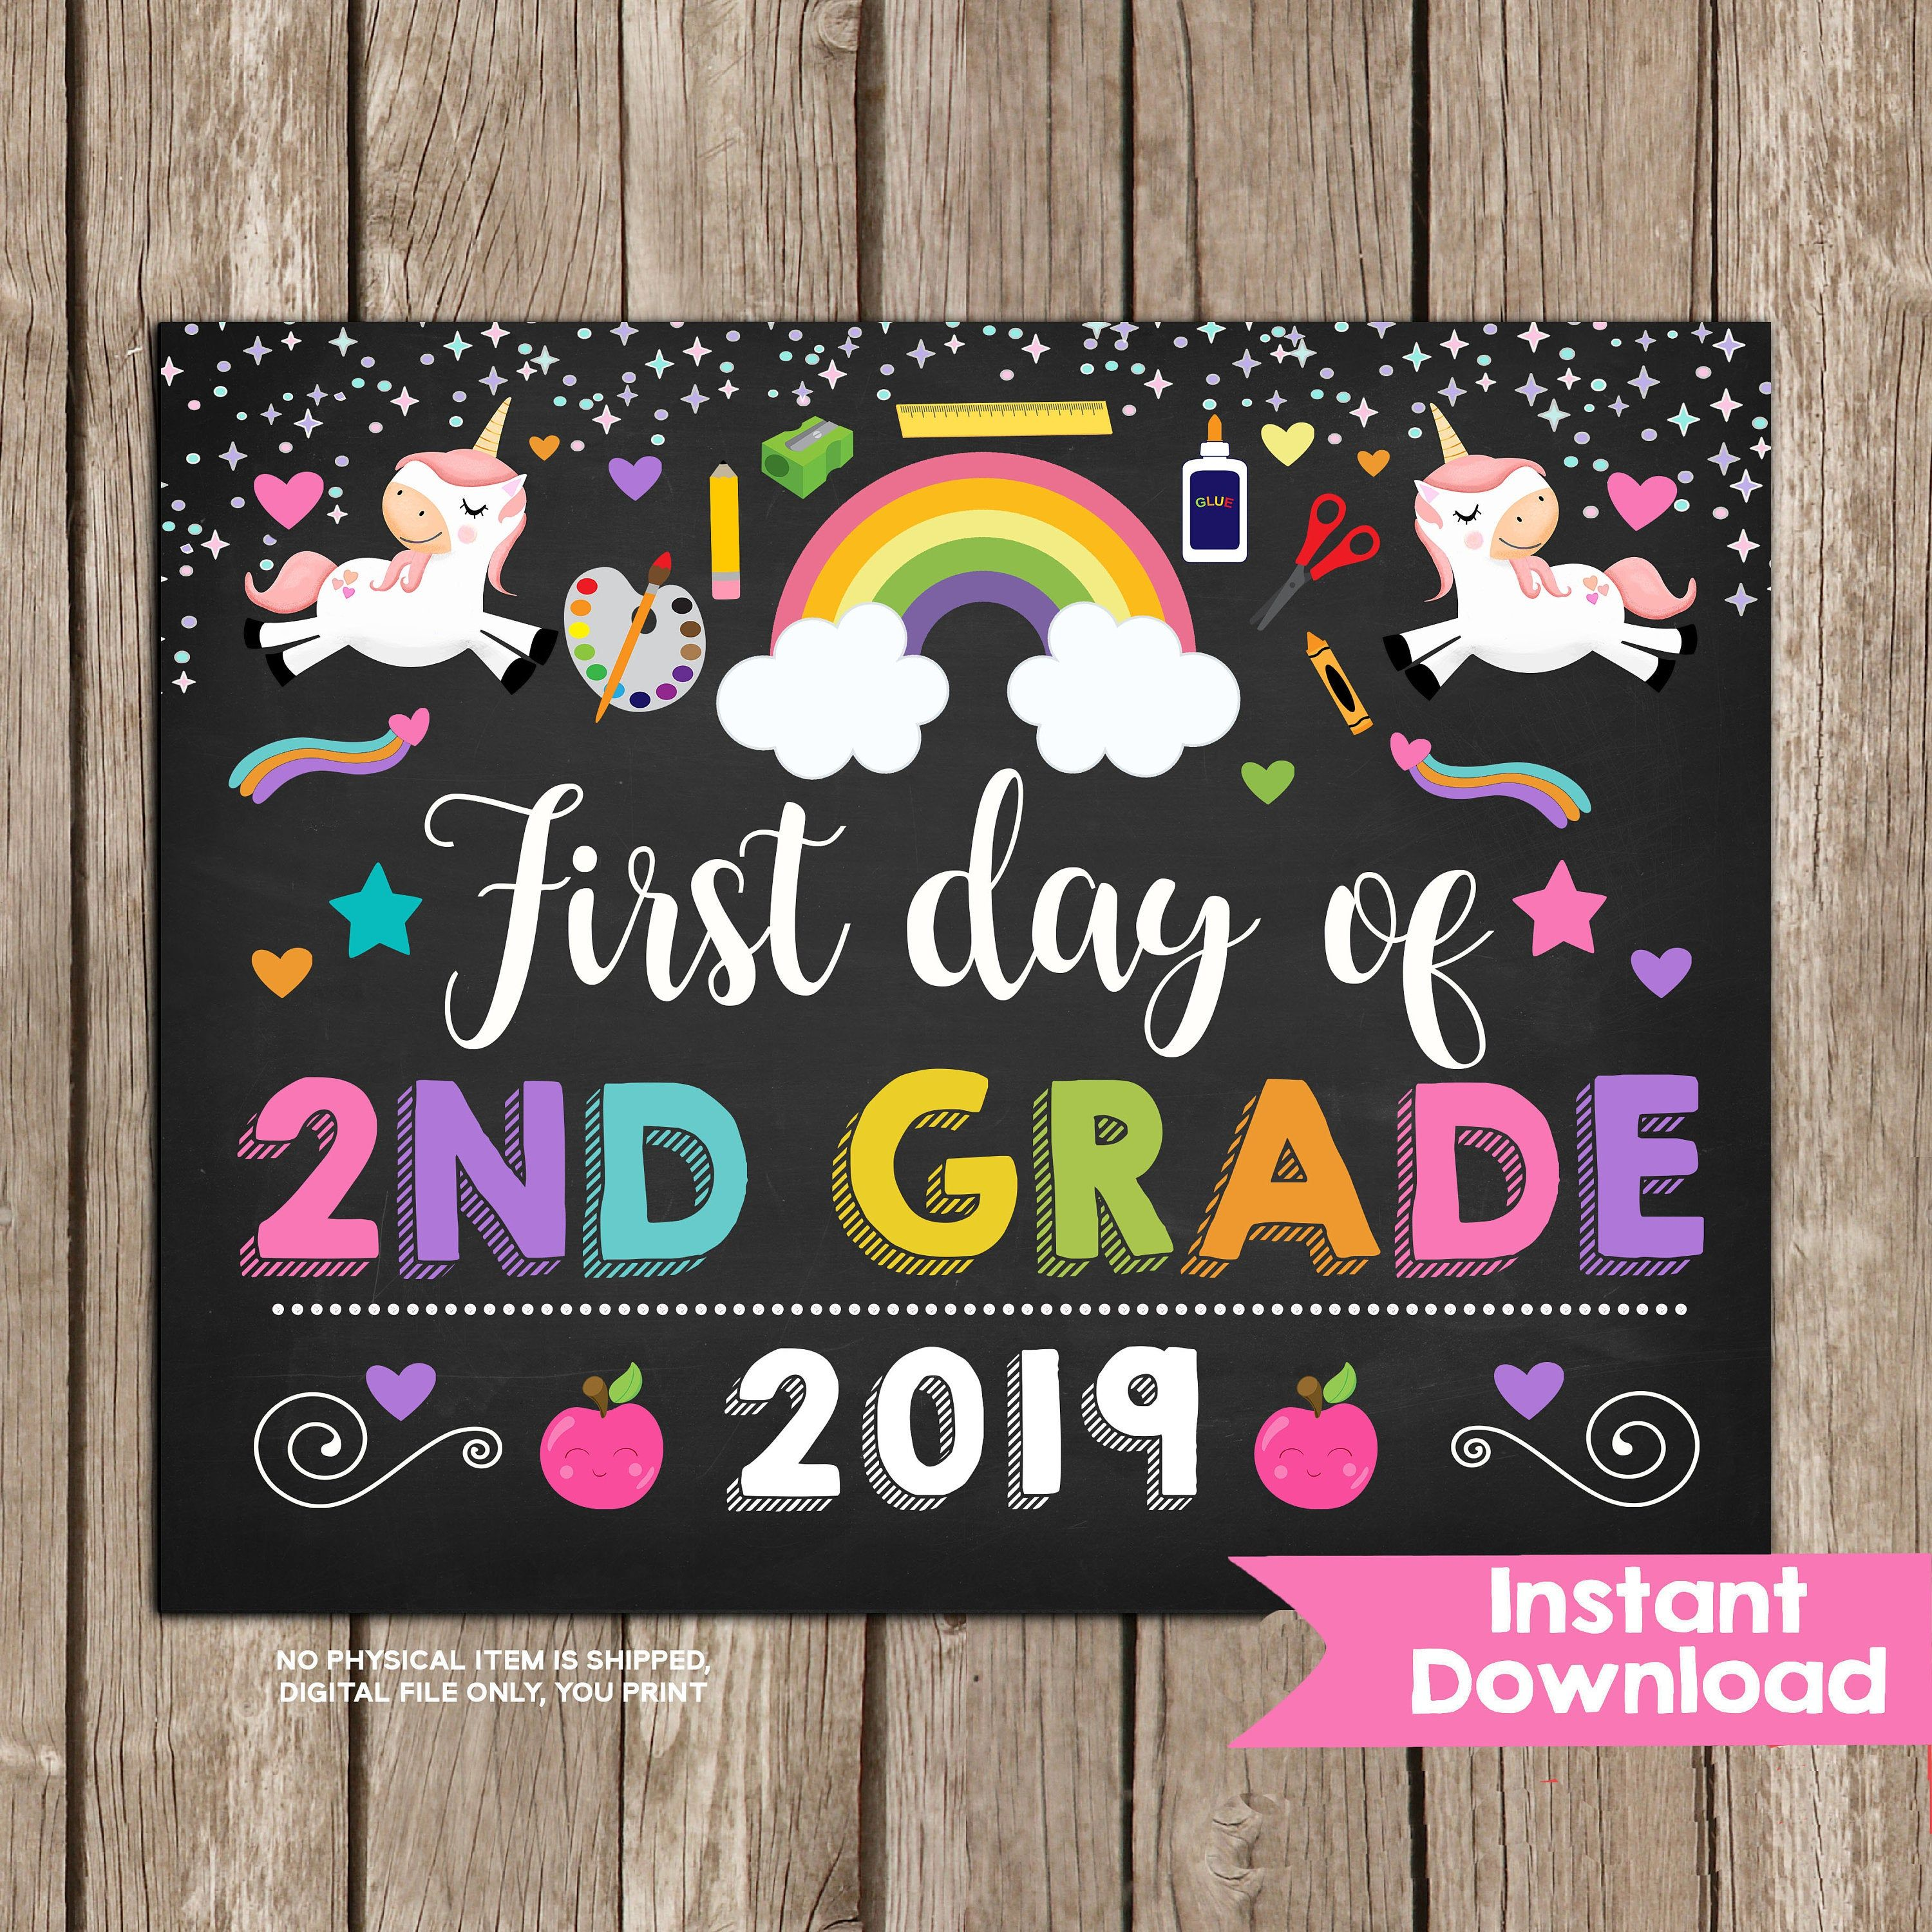 photo relating to First Day of Second Grade Printable Sign identify Unicorn Very first Working day of 2nd Quality Indicator,Lady 1st Working day of Instant